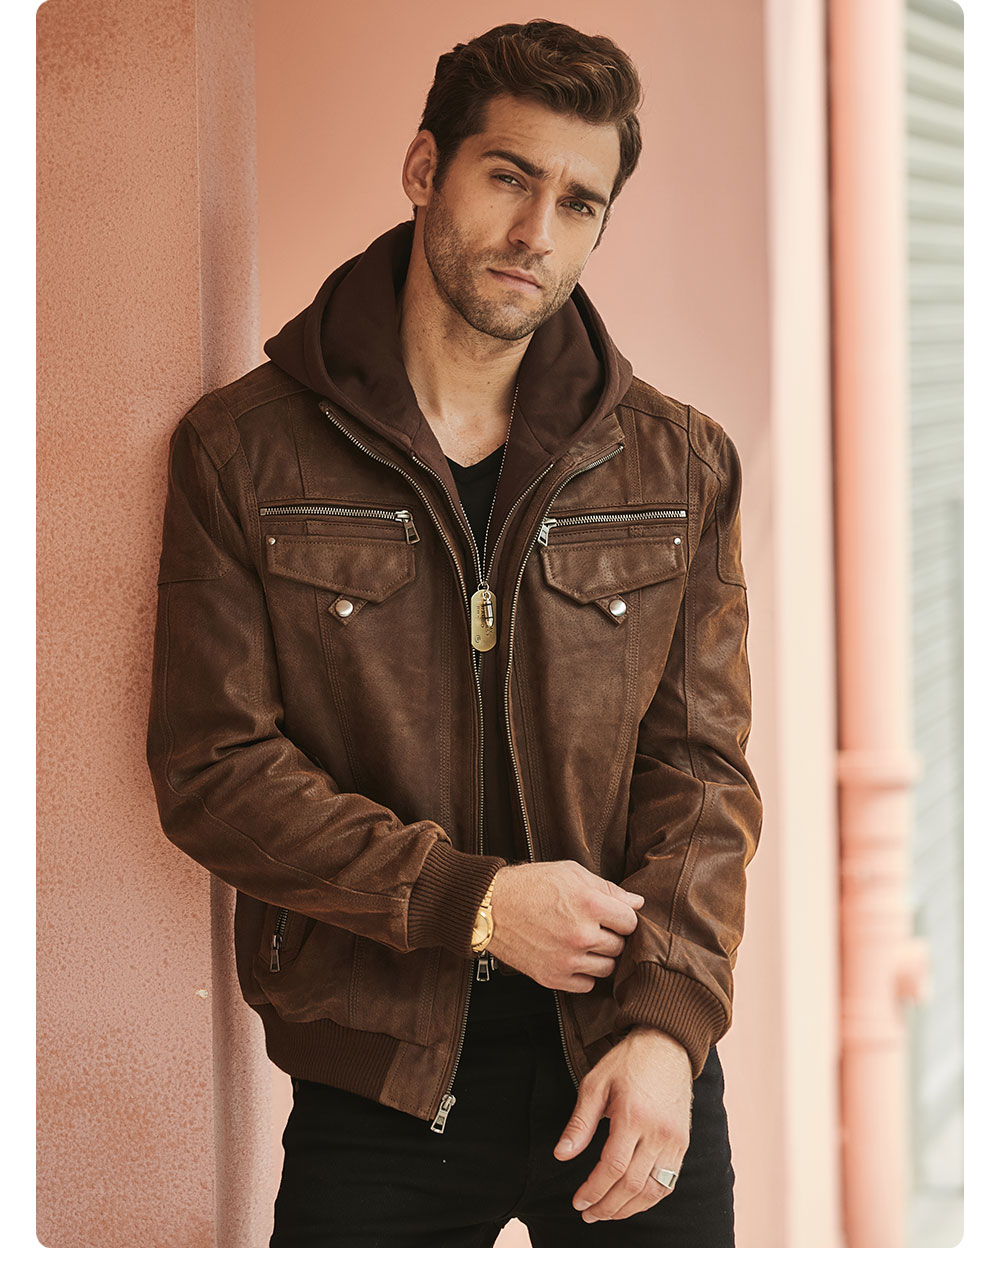 Hdb45e55a238f42f2aa8e98ddf0e9a95cW FLAVOR New Men's Real Leather Jacket with Removable Hood Brown Jacket Genuine Leather Warm Coat For Men